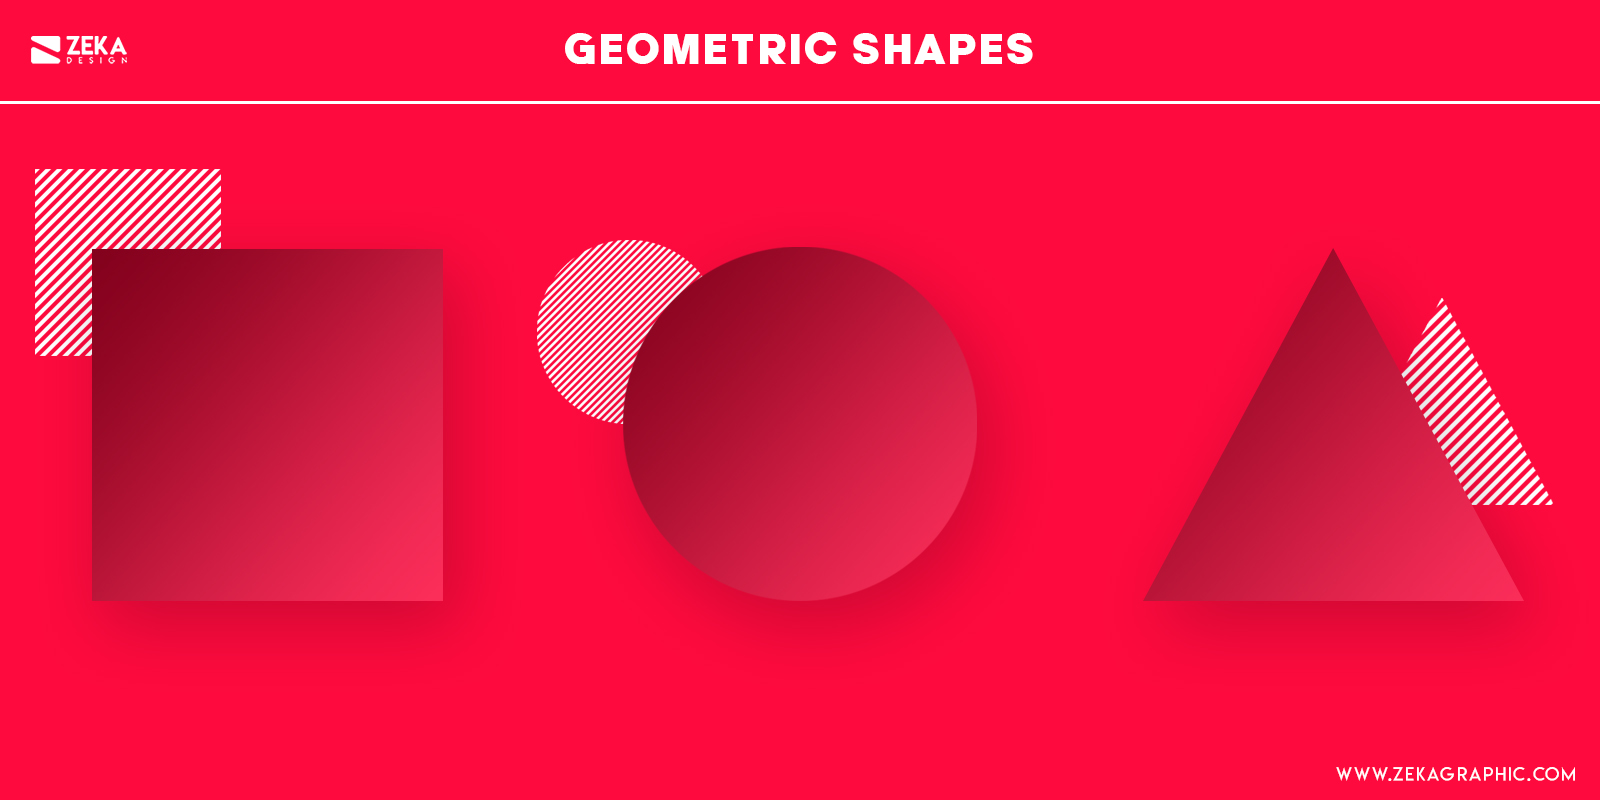 Geometric Shapes Psychology in Graphic Design